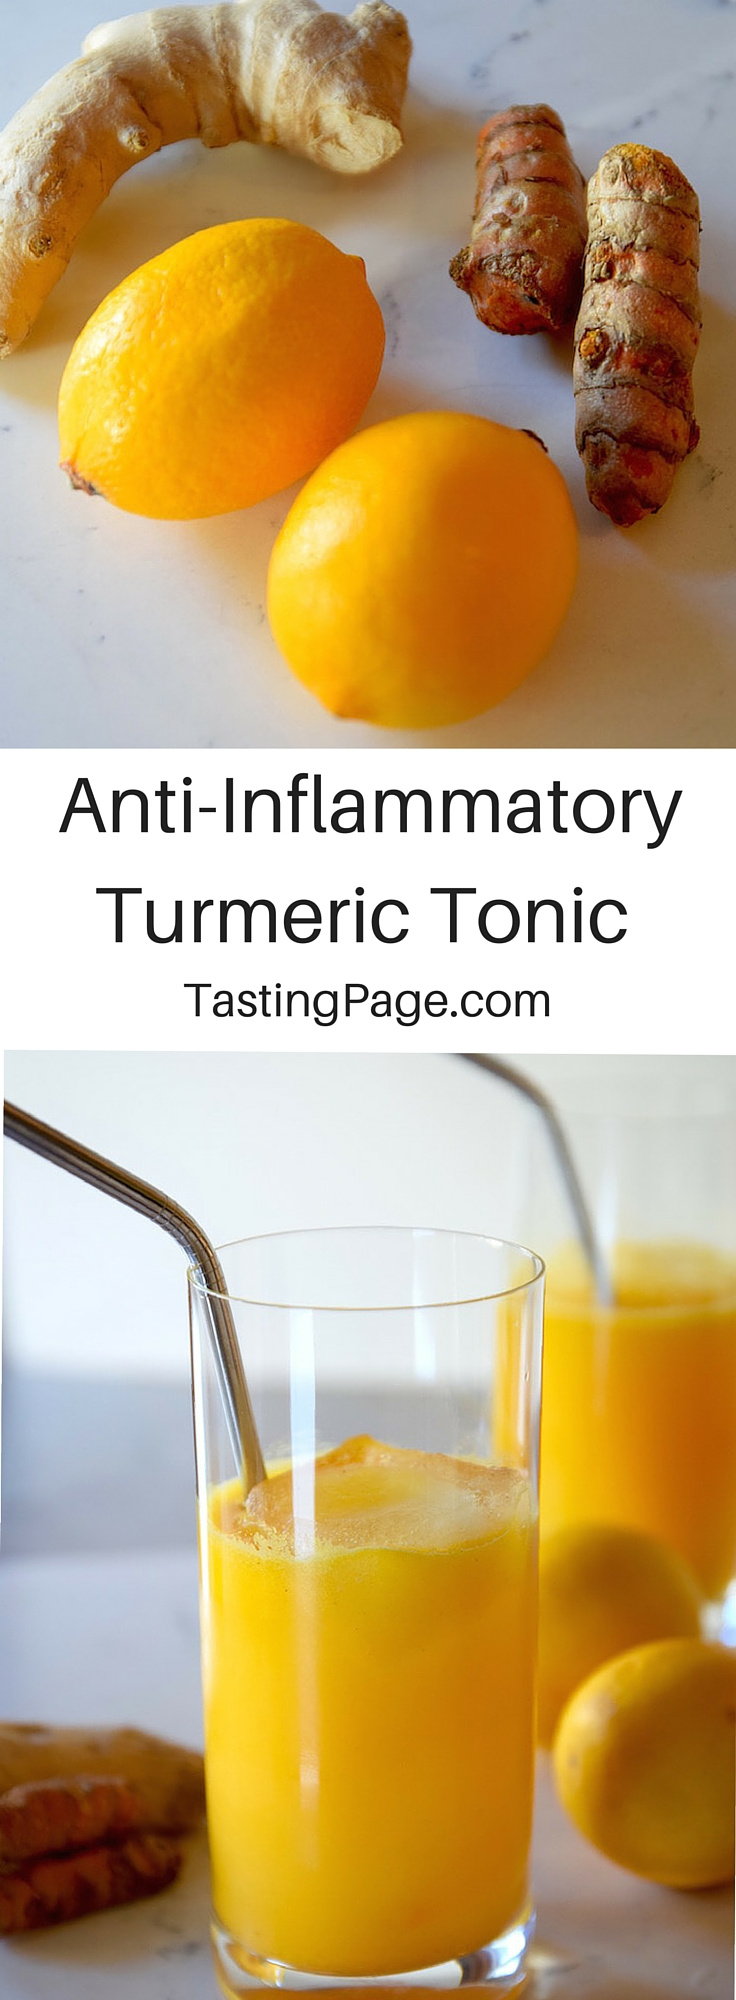 Fight swelling in the body with this Anti-Inflammatory Turmeric Tonic. It's tasty & super healthy | TastingPage.com #turmeric #antiinflammatory #superfood #turmericrecipe #turmerictonic #elixir #drink